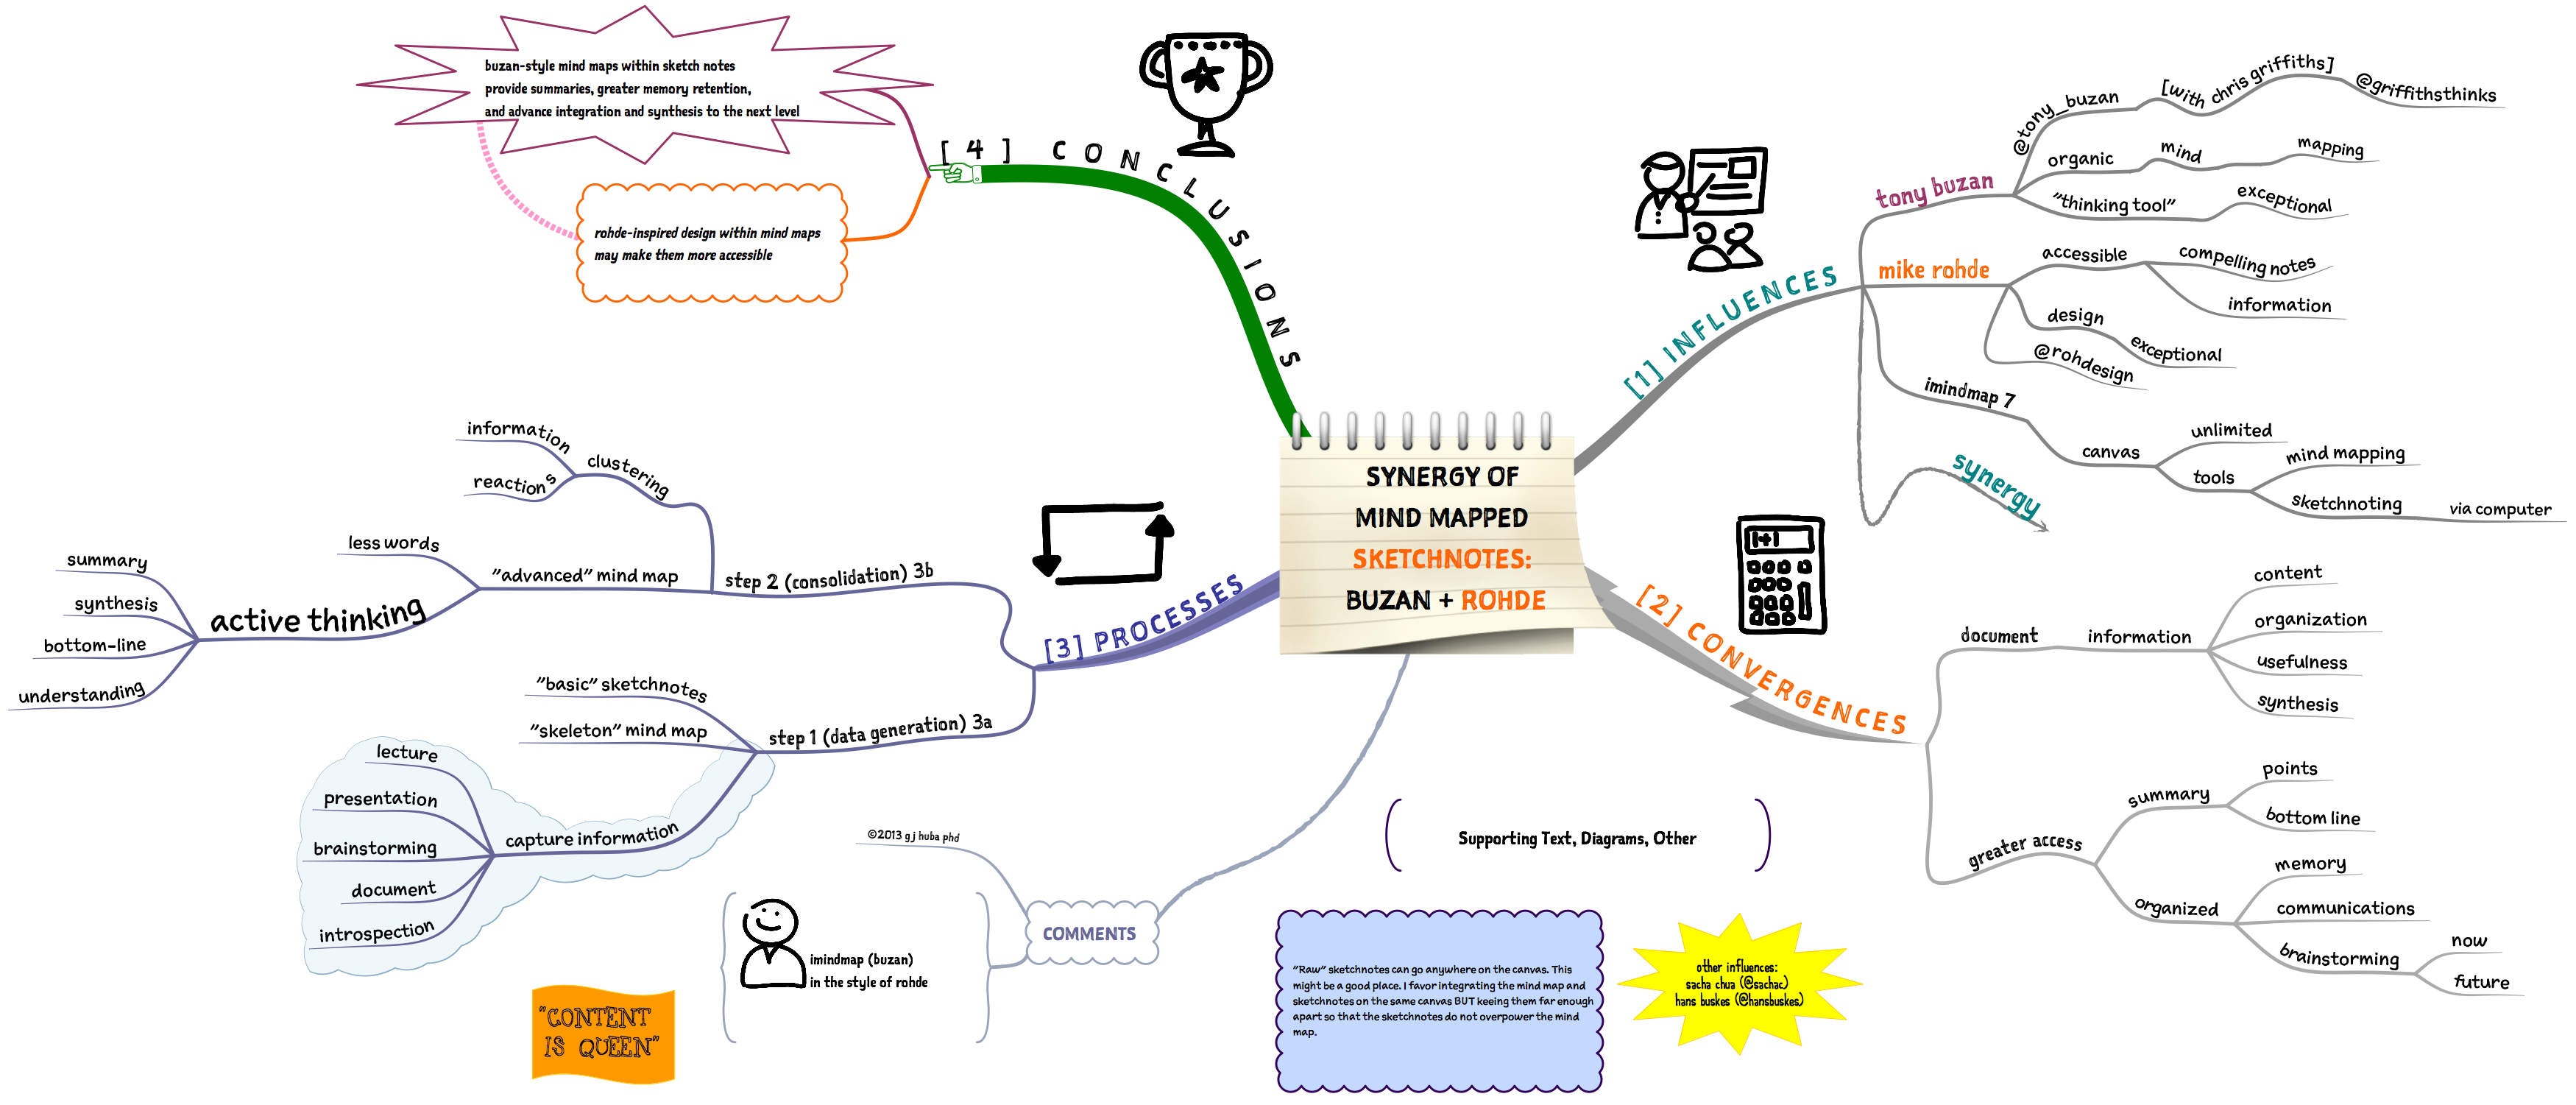 Evaluation clipart mapping. Huba hubaisms bloopers deleted